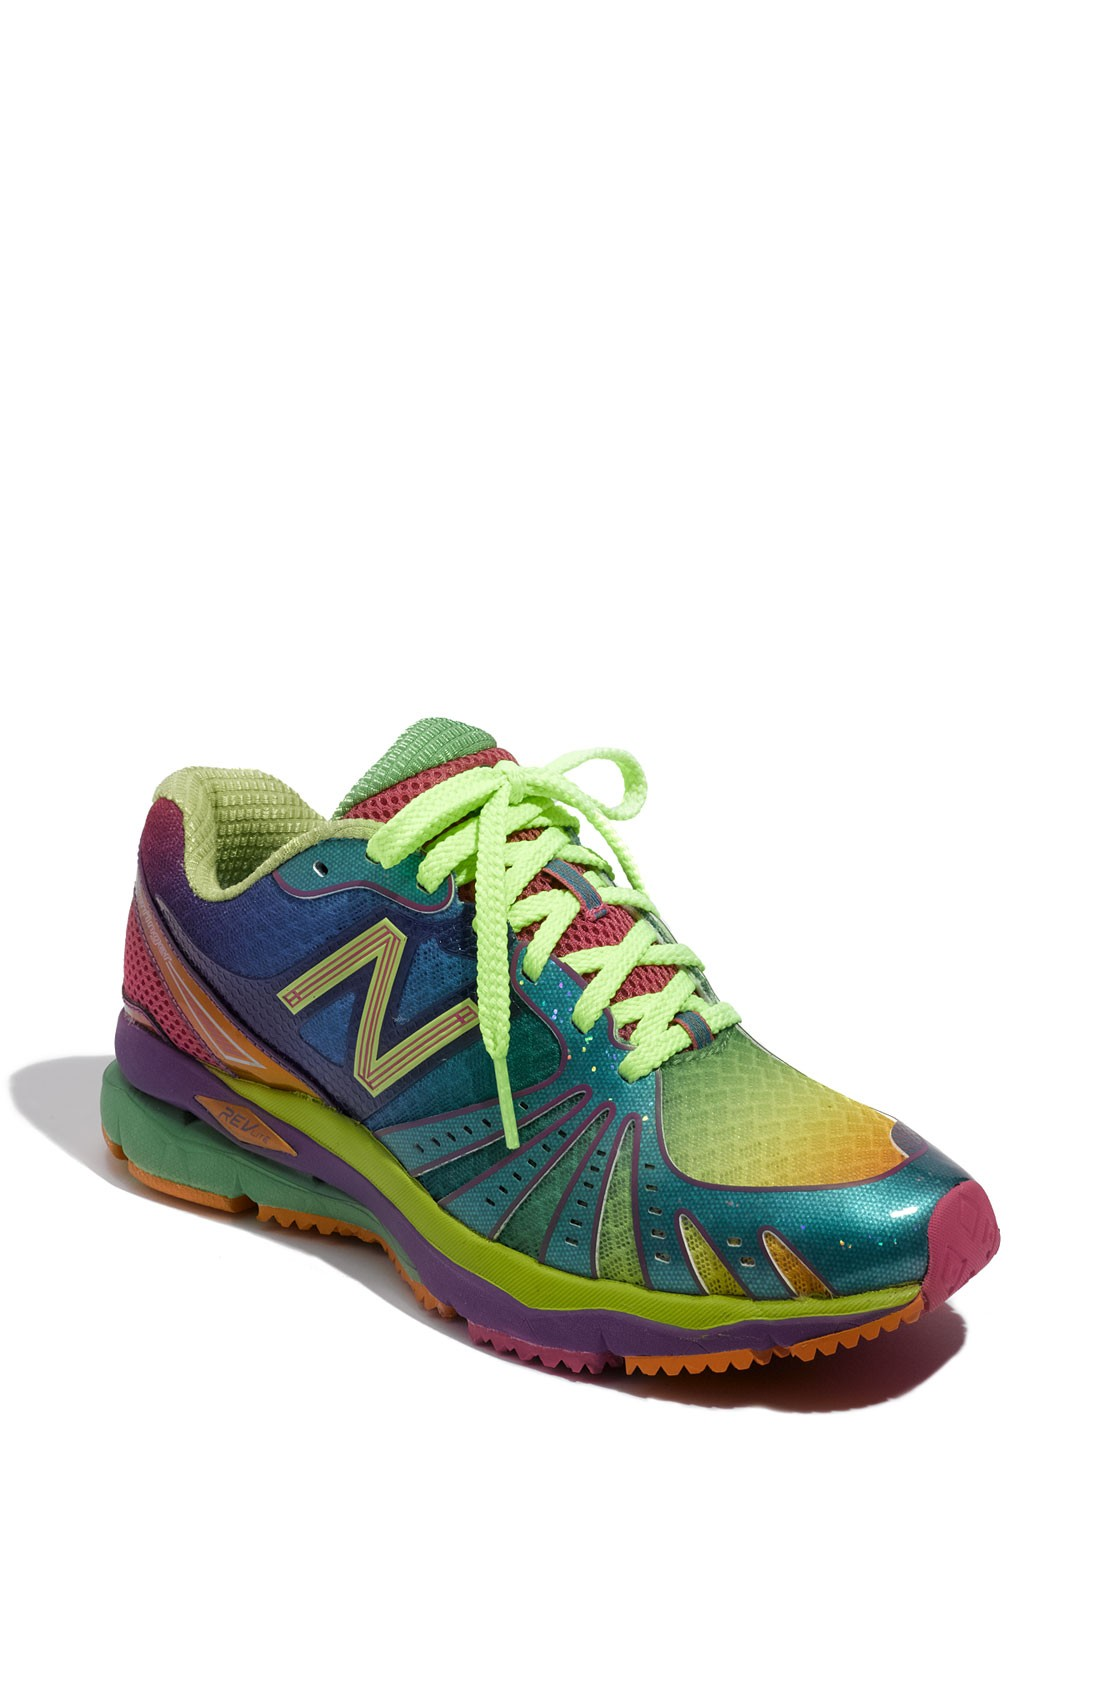 Womens New Balance Multicolor 890 Rainbow Running shoes Blue Lime Green Rose Purple